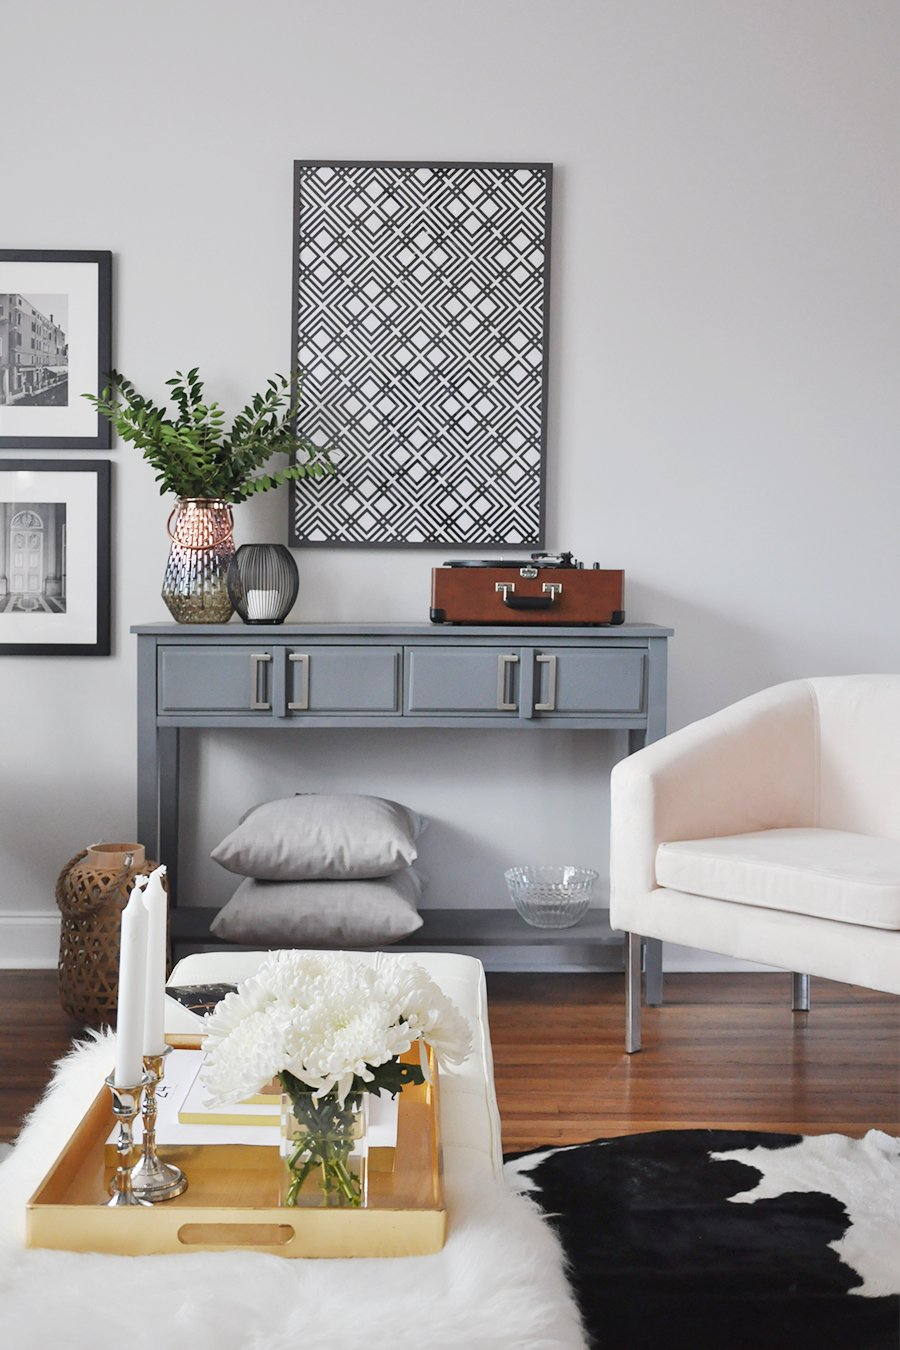 10 Furniture + Decor Items in Our House That Are Currently On Sale